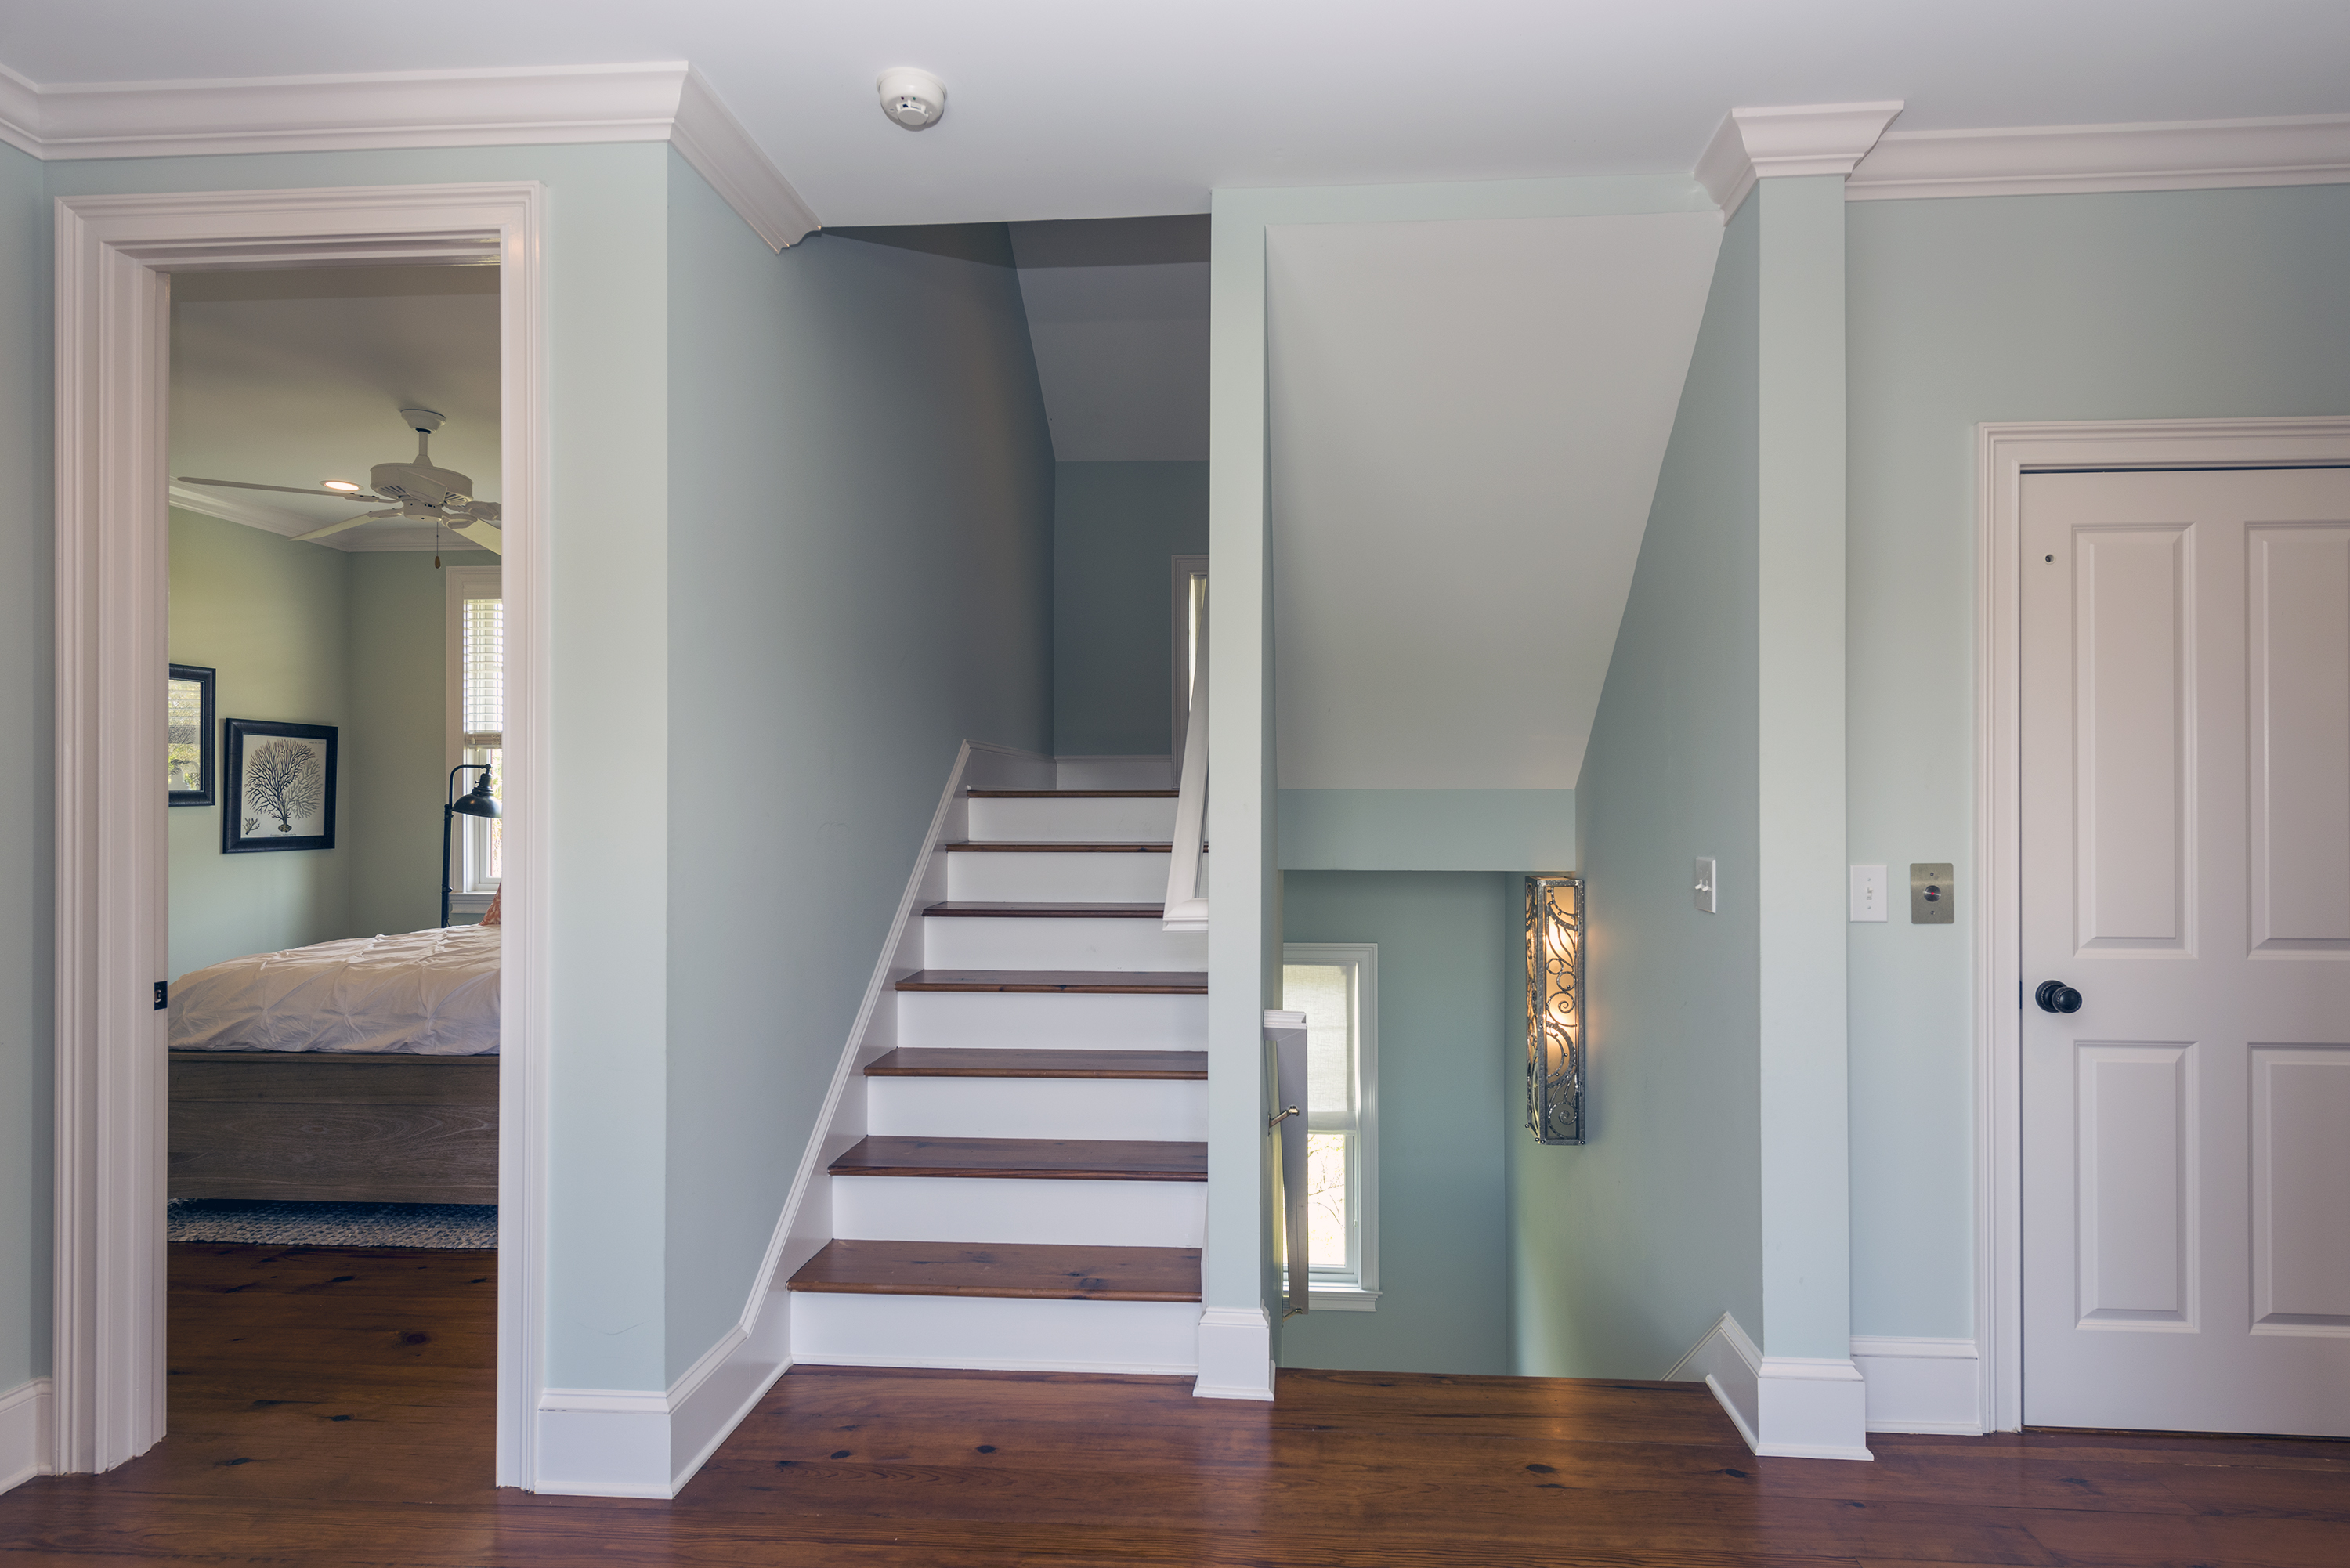 Ascend the stairs to the second floor bedroom area.